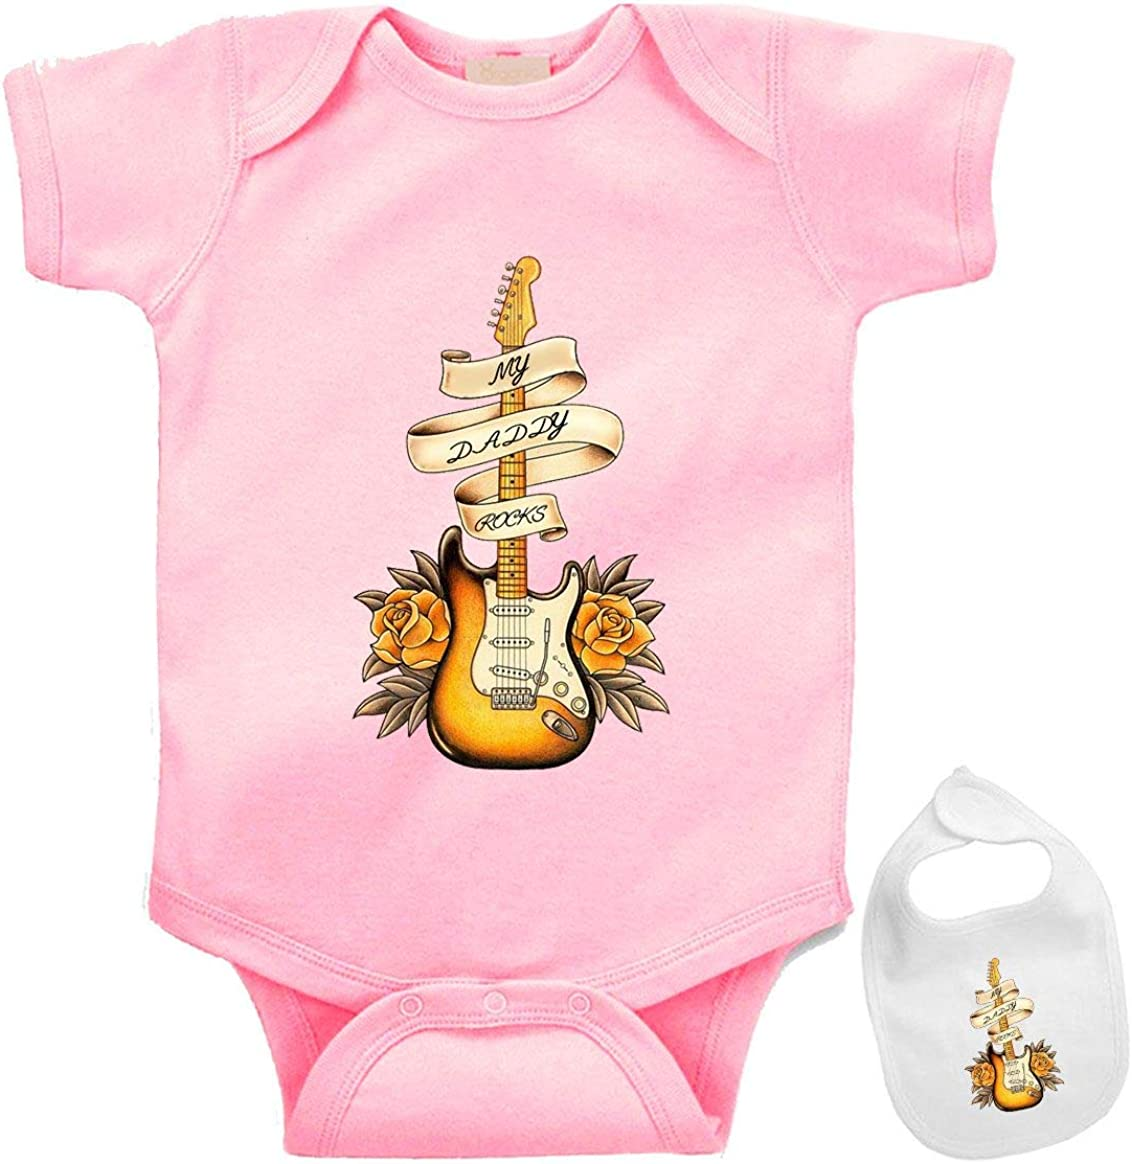 My Deluxe Daddy Rocks Recommendation -Cute Music Guitar Themed Infant On Baby Bodysuit